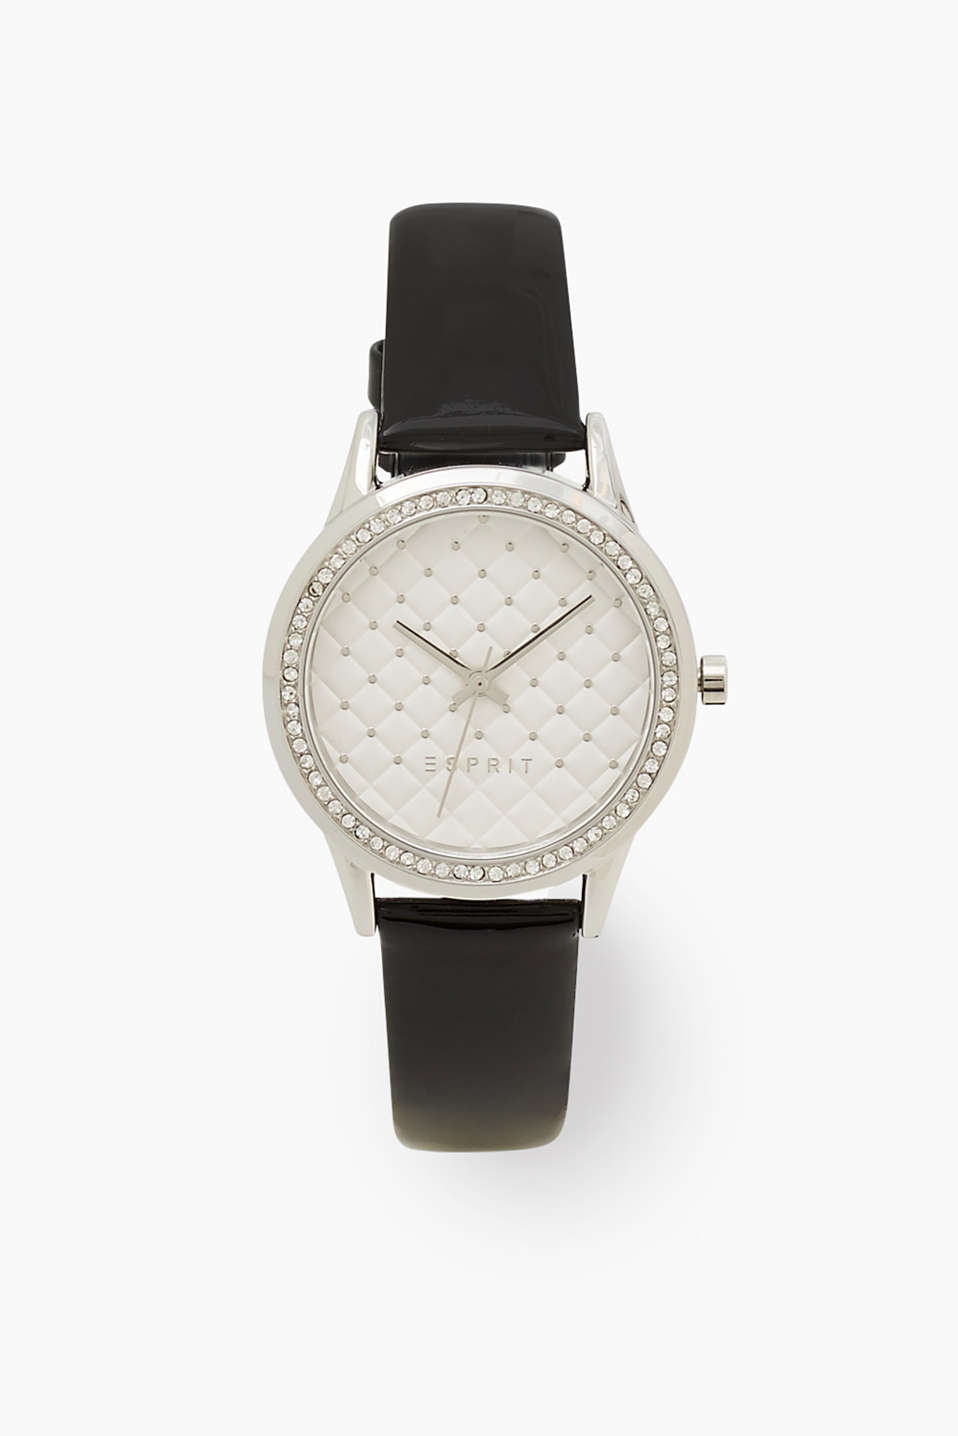 Elegant, shimmery stainless steel watch with a striking dial and a zirconia-trimmed bezel